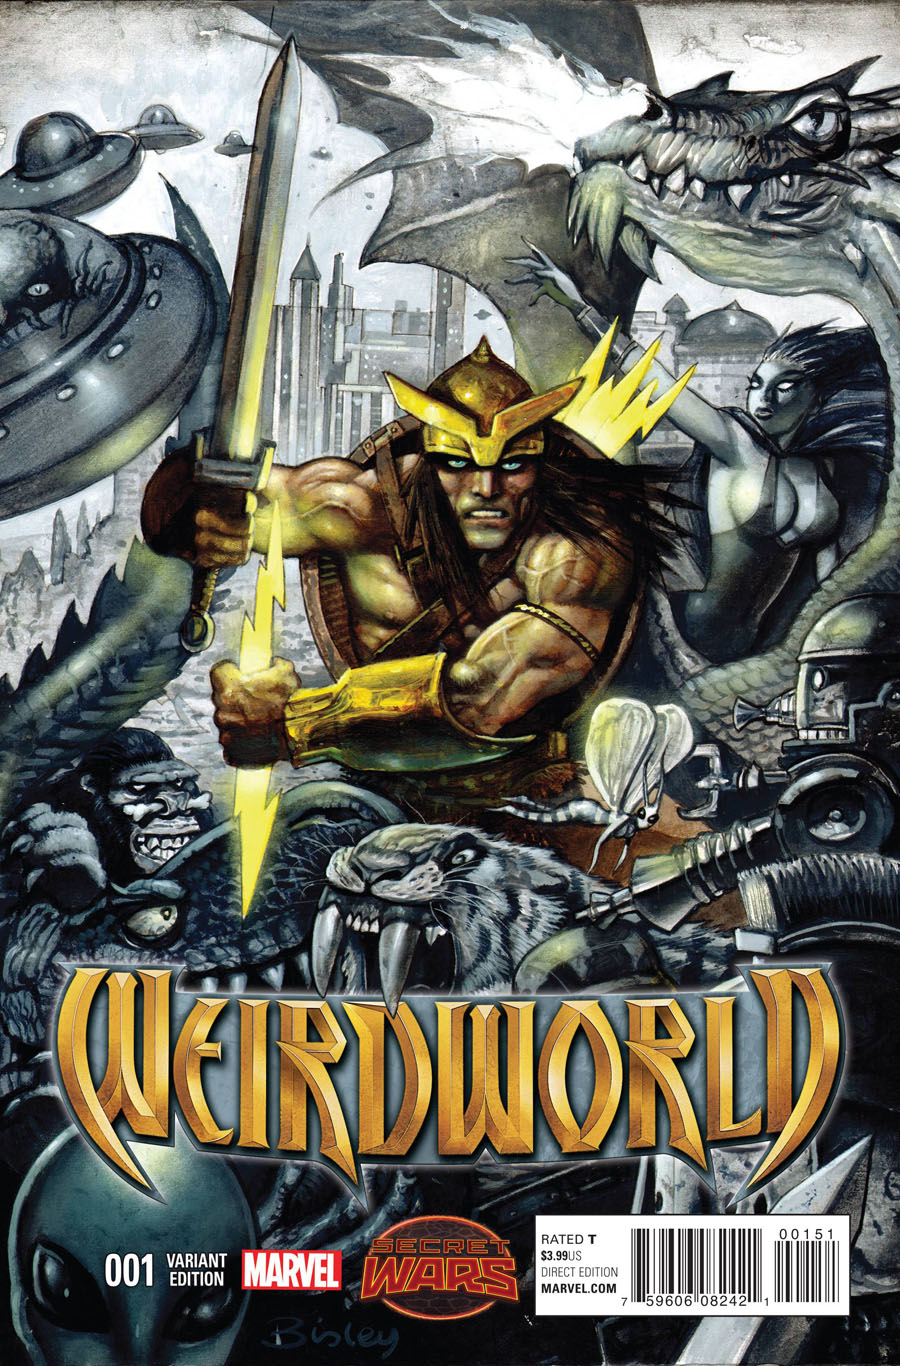 Weirdworld #1 Cover F Incentive Simon Bisley Variant Cover (Secret Wars Warzones Tie-In)